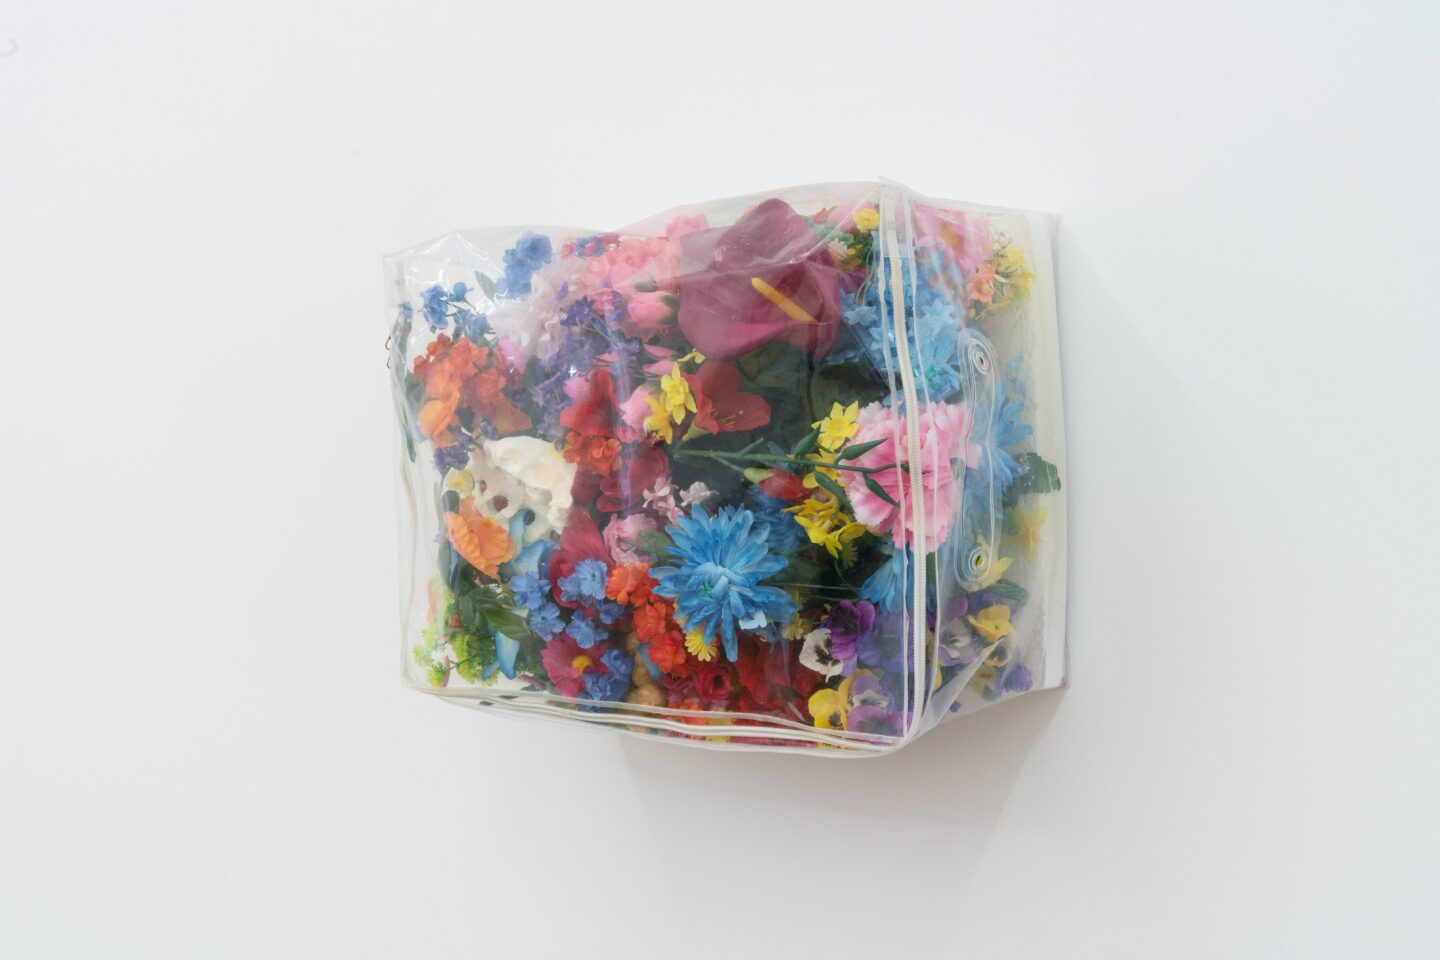 Exhibition View Groupshow «Kasten; view on Amy Yao, Weeds, 2015» at Stadtgalerie, Bern, 2020 / Photo: CE / Courtesy: the artist and Stadtgalerie, Bern